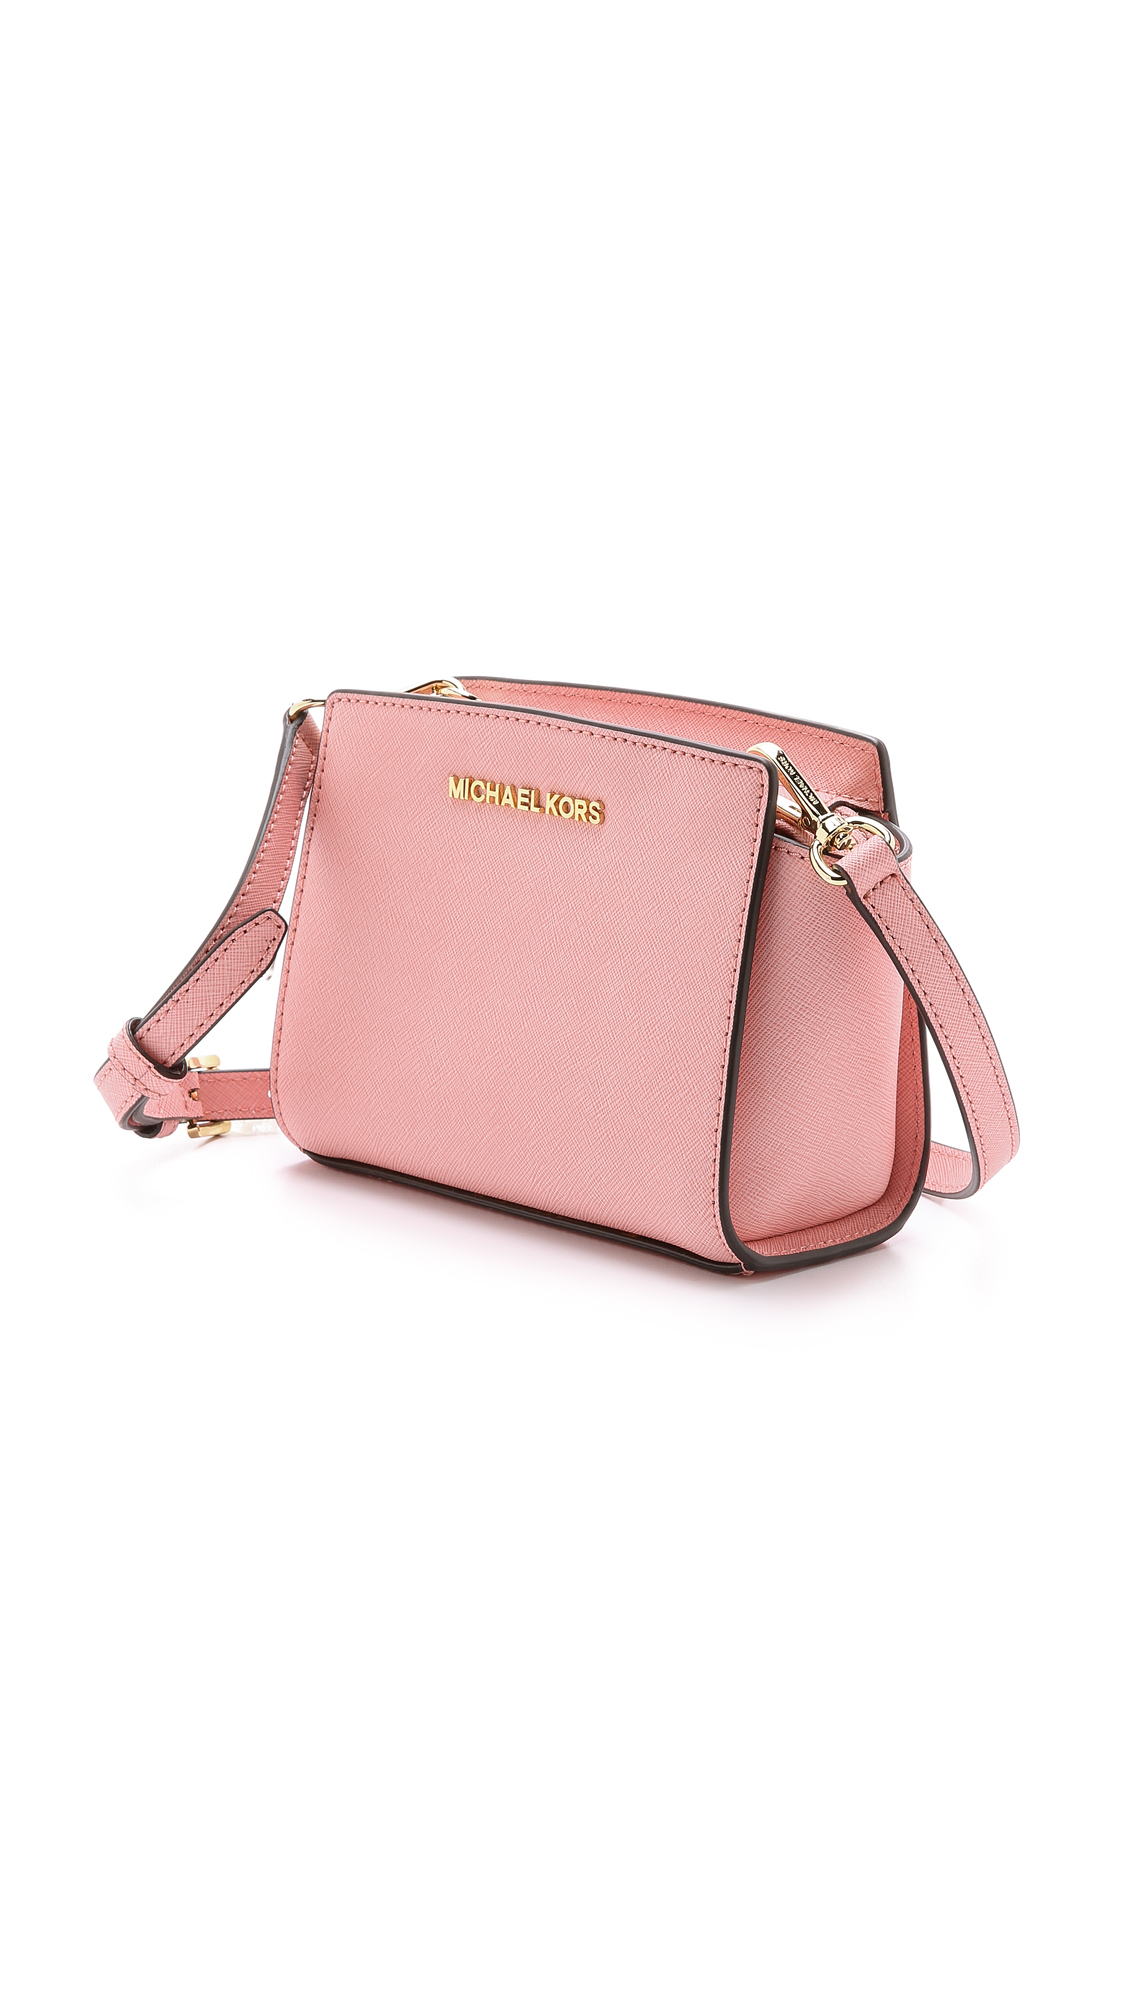 8401b0ca11a3 MICHAEL Michael Kors Selma Mini Messenger Bag - Pale Pink in Pink - Lyst